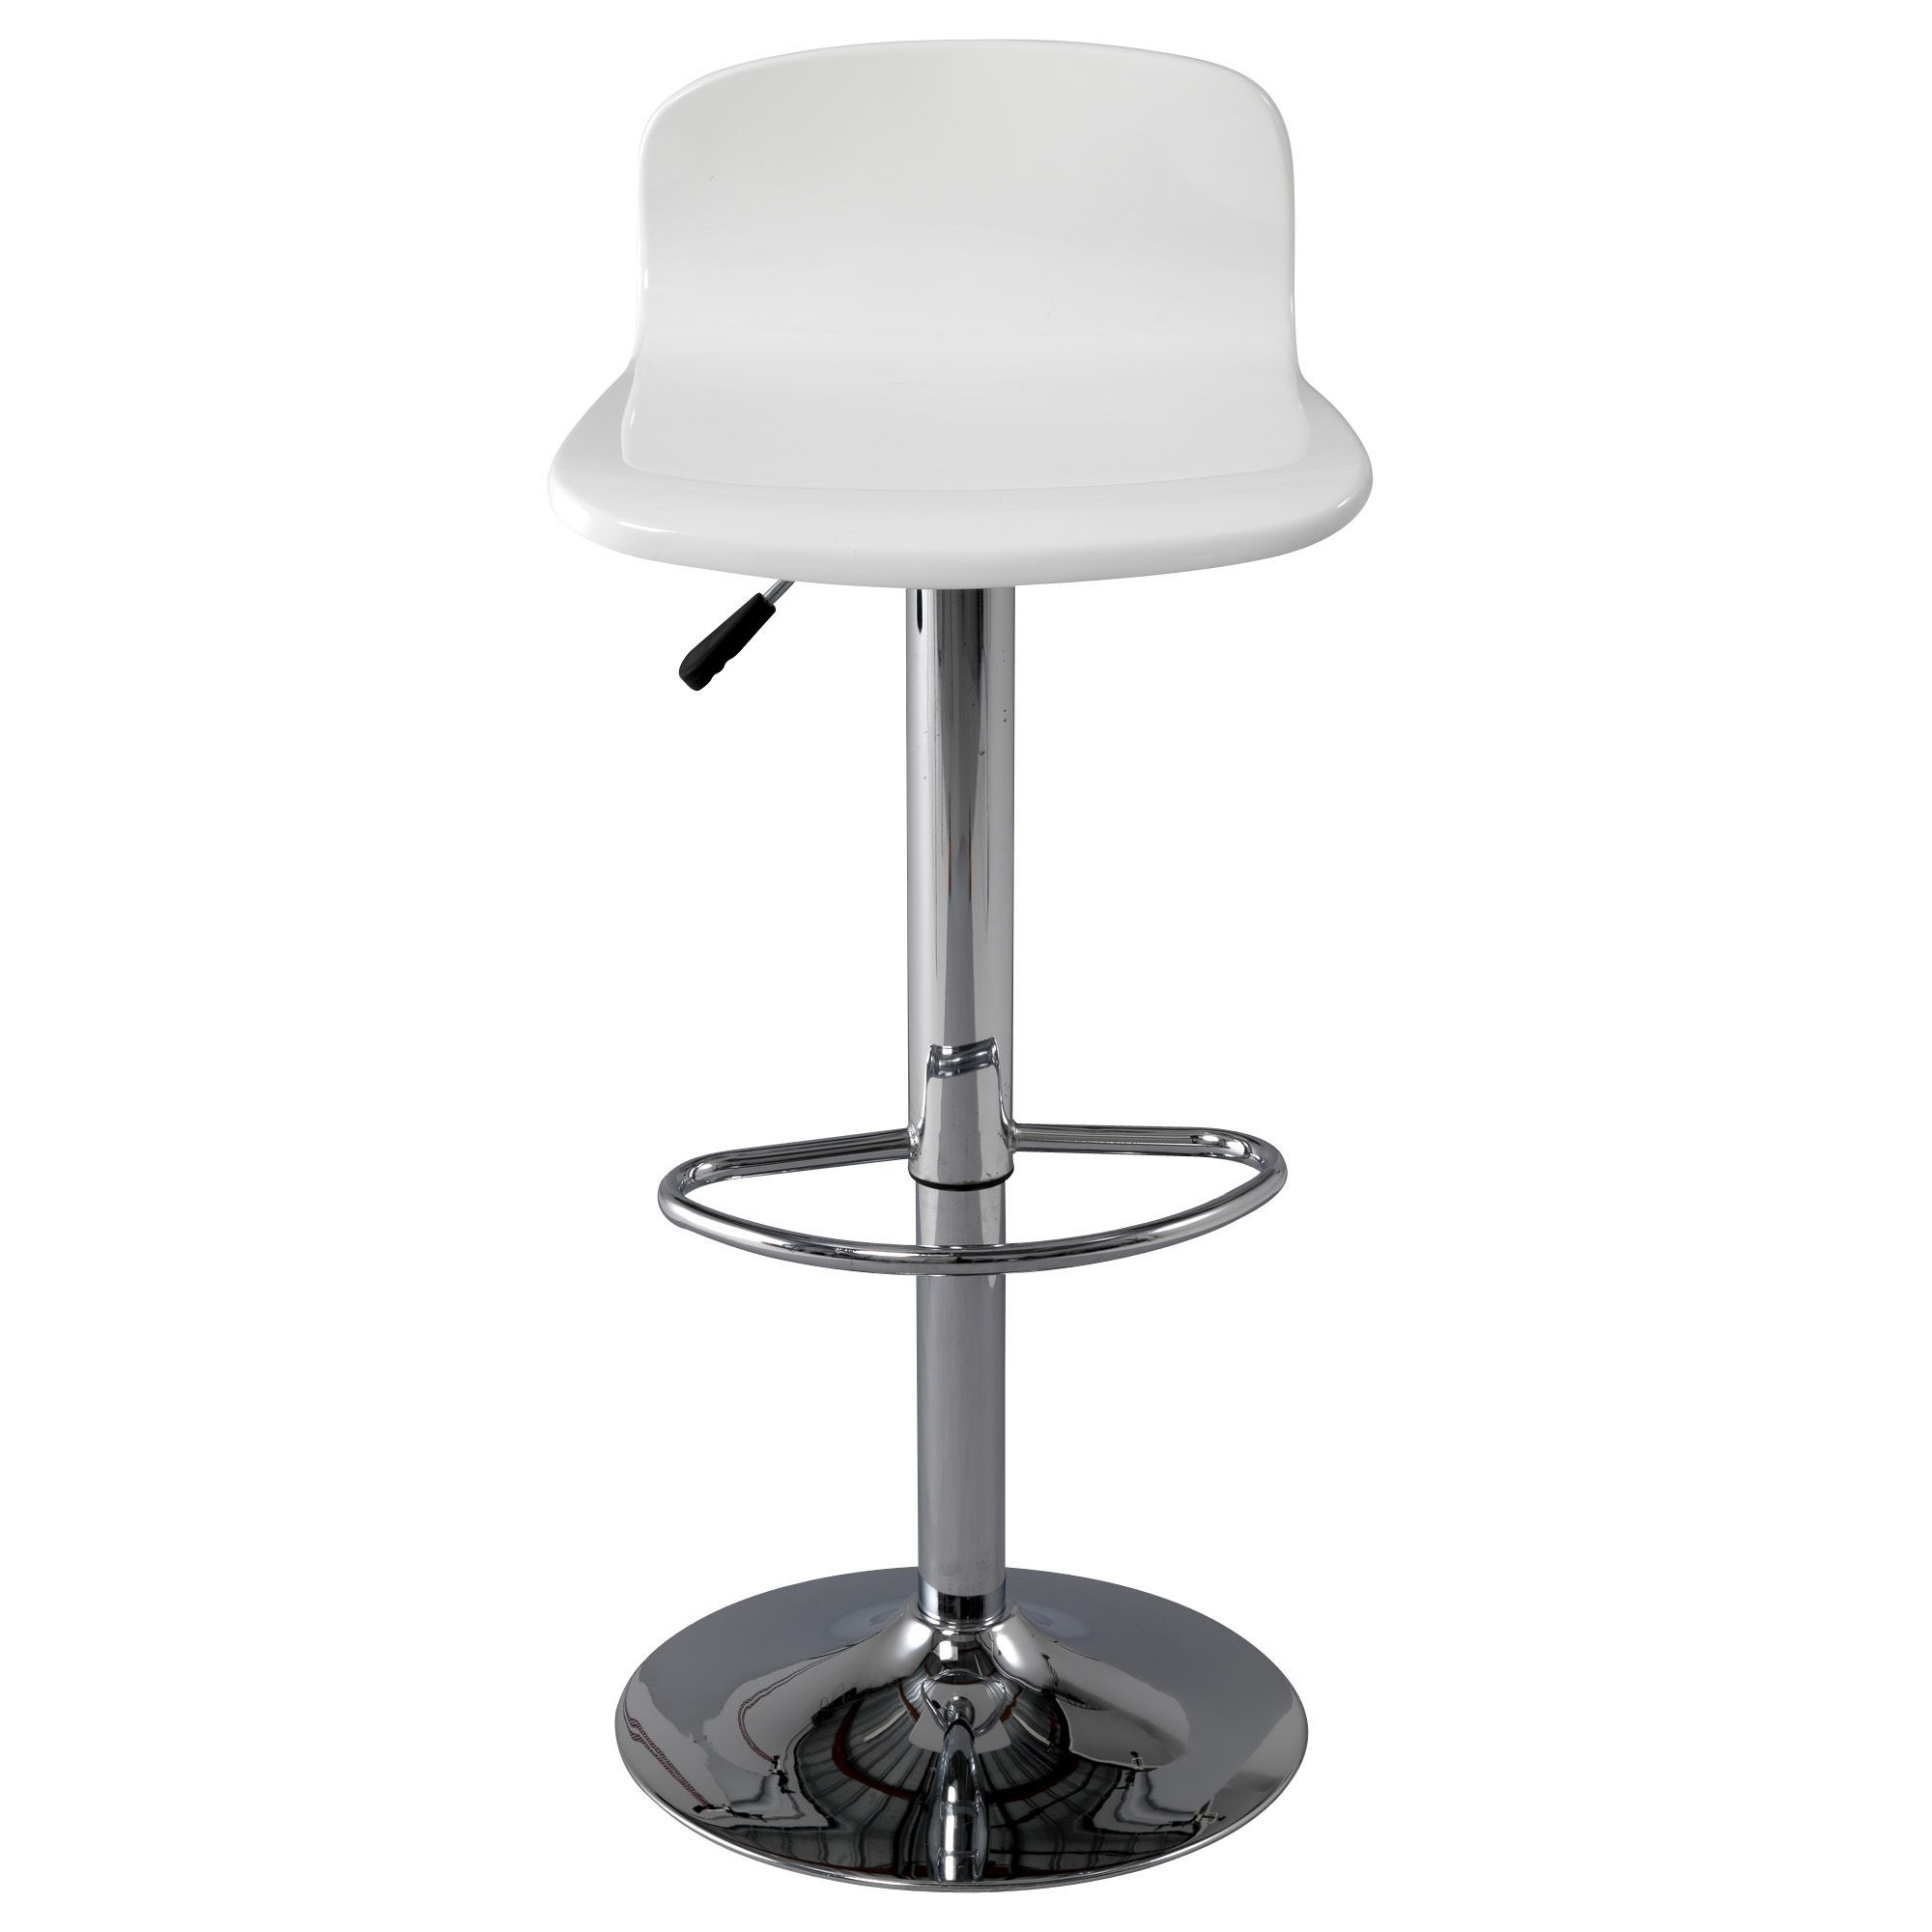 Alinea Creteil Tabouret De Cuisine Alinea Beautiful Alinea Meuble Bar